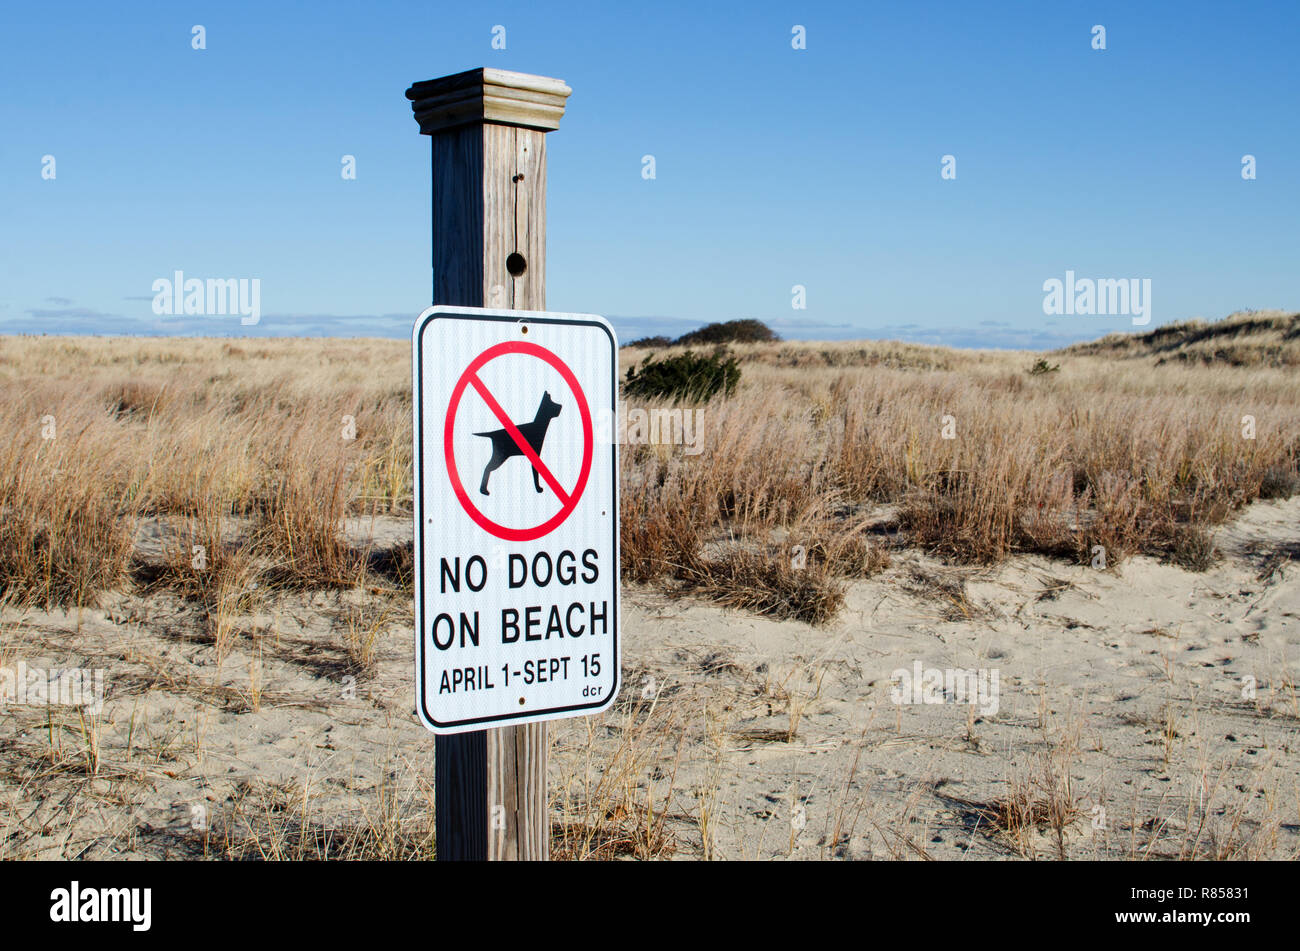 No dogs on beach sign posted by dunes at Scusset Beach, Cape Cod in Sagamore, Bourne, Massachusetts, USA Stock Photo